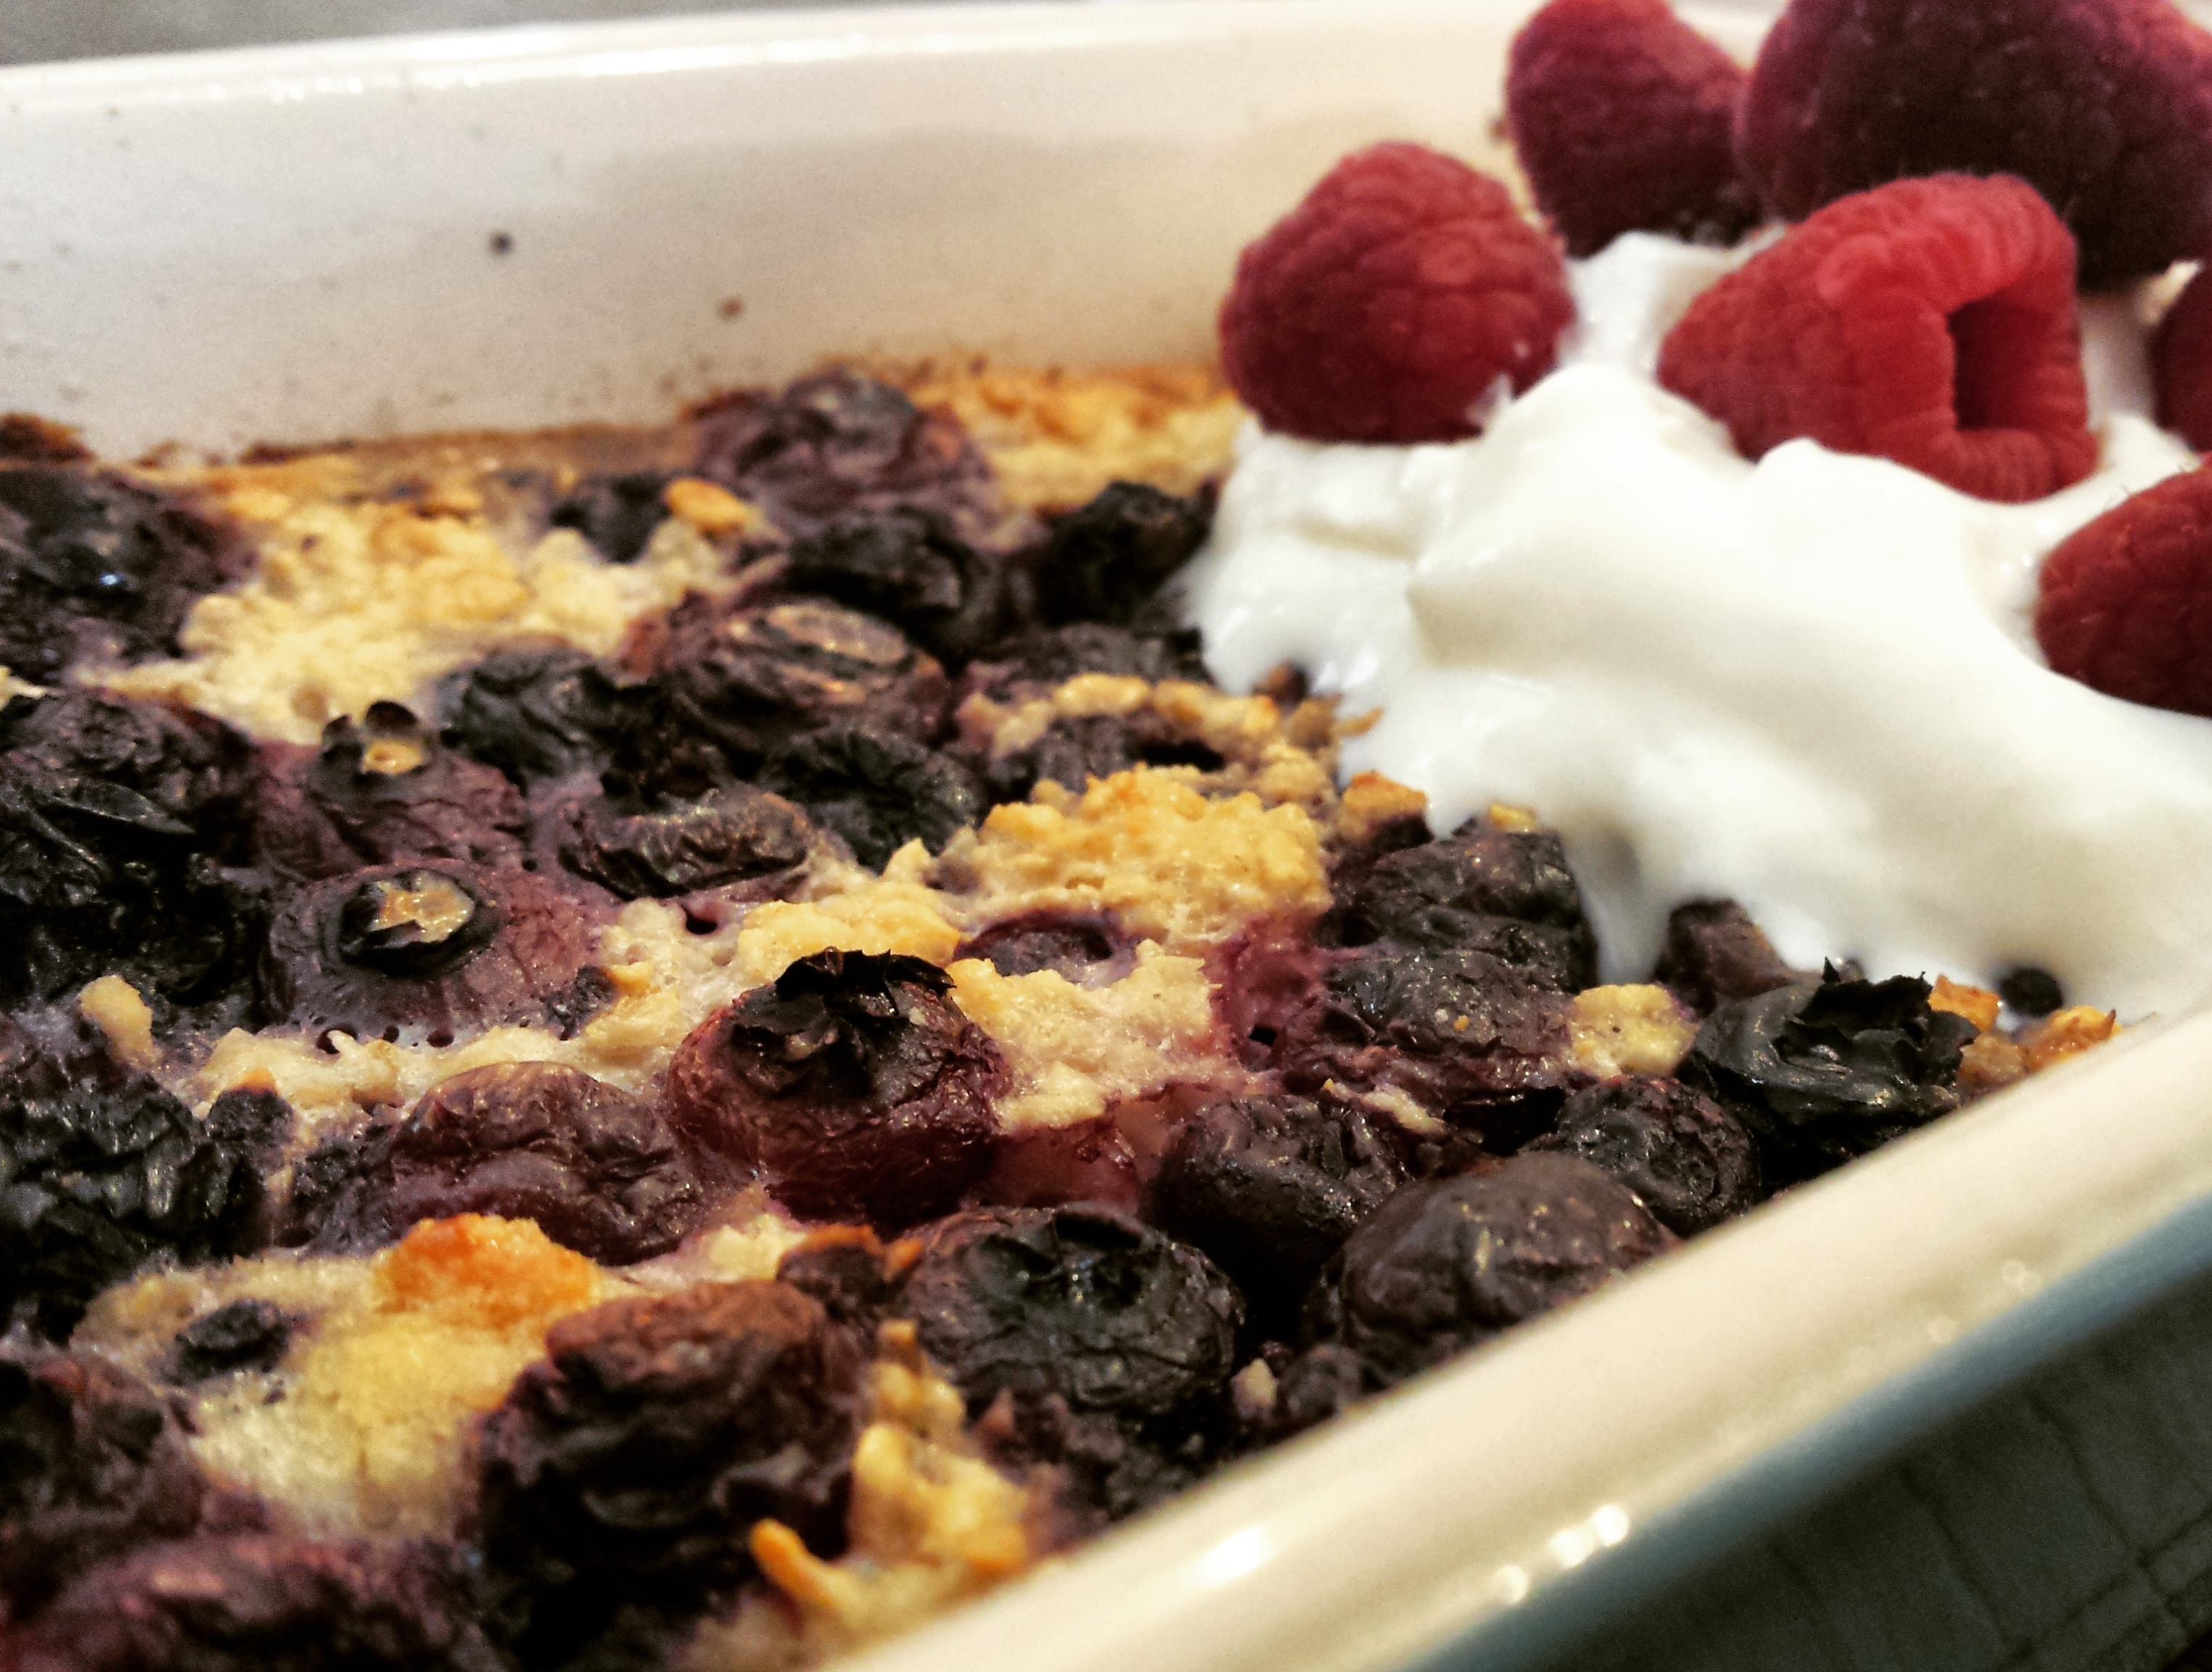 Baked blueberry and vanilla porridge